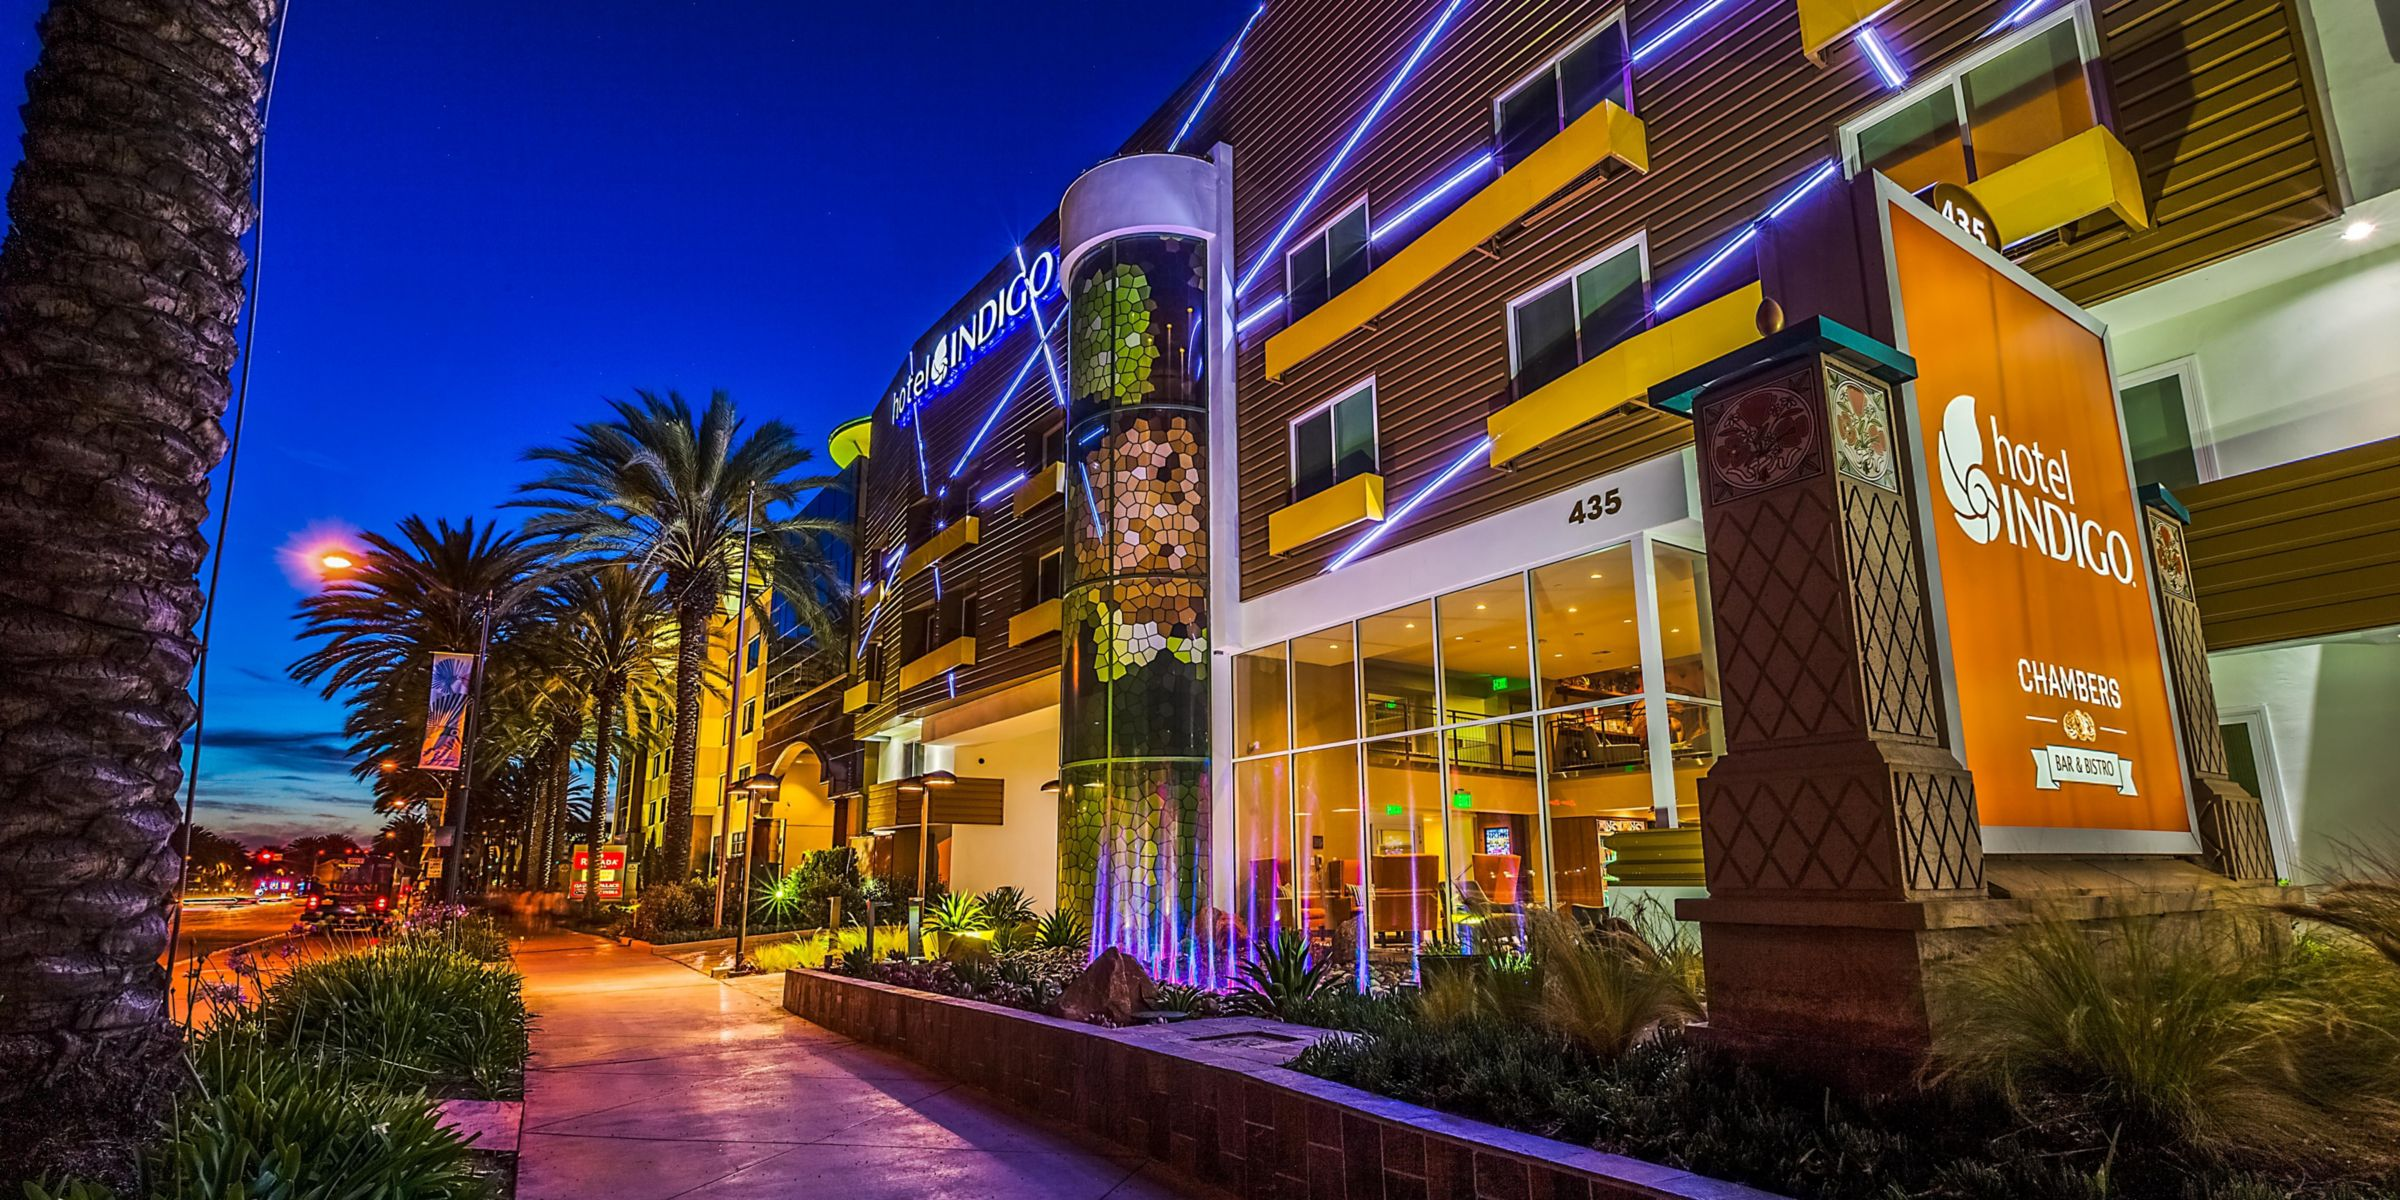 Hotel Indigo Anaheim Is A Short 15 Minute Walk To Disneyland Enjoy Our Nightly Water Fountain Music Show From 5 30 8